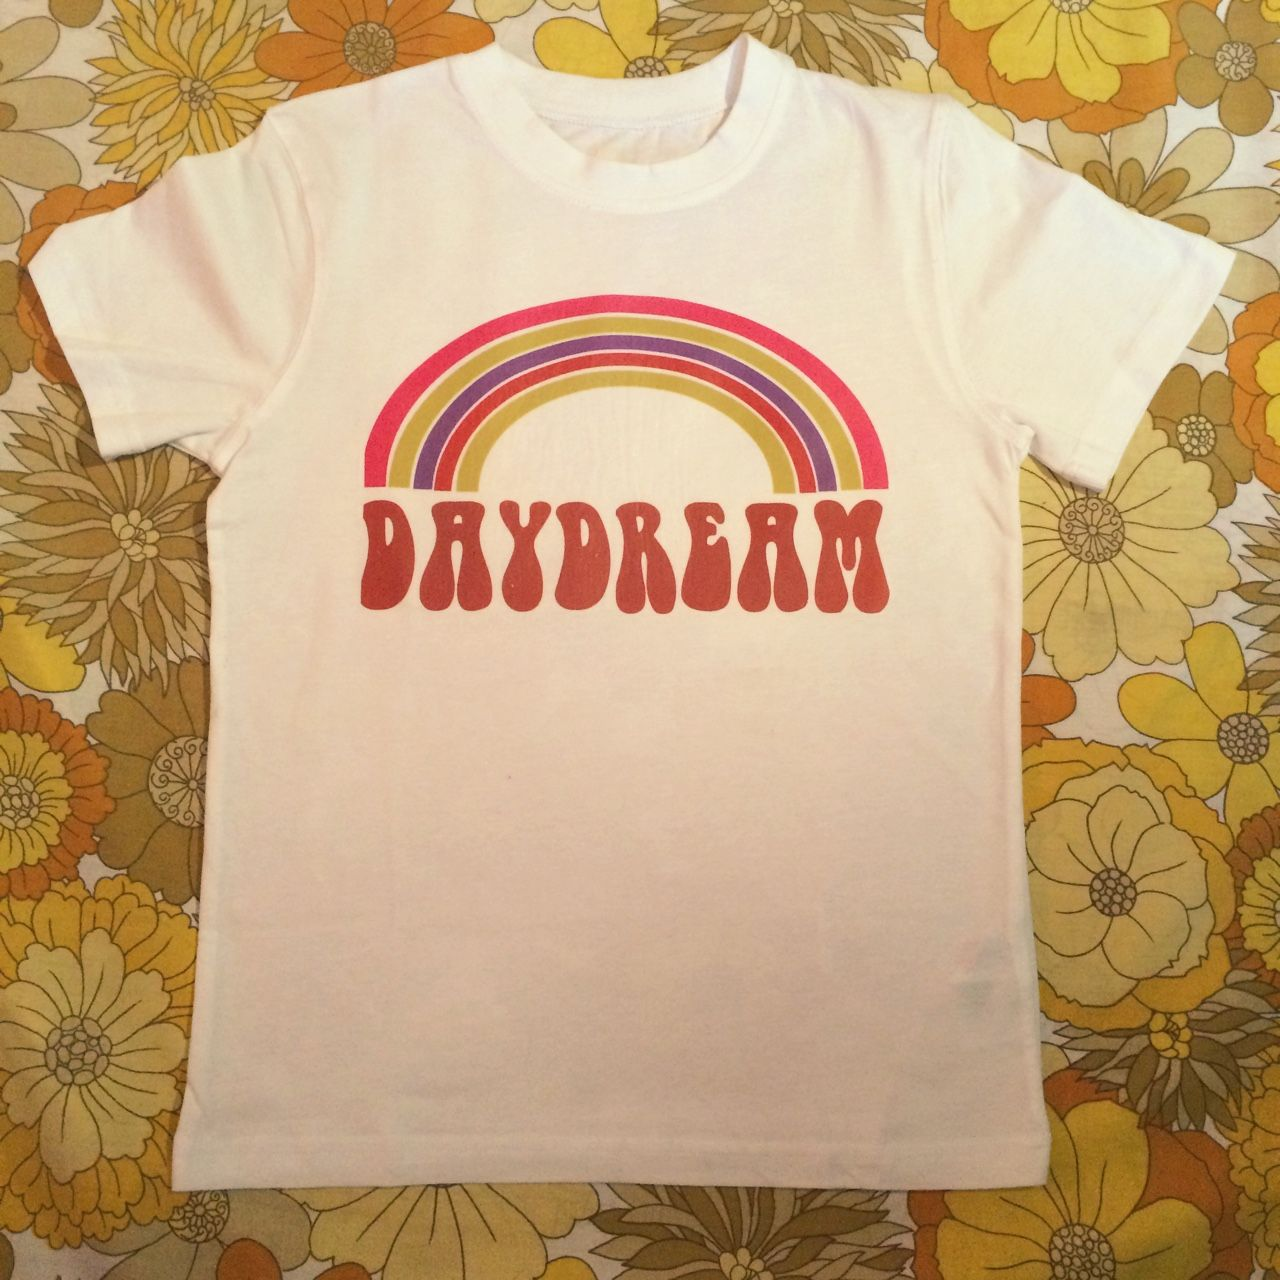 26517cc4 Hippie boho vintage retro 60s 70s: white rainbow daydream tshirt It is  printed onto a quality thick neckline t-shirt. It is also unisex PM ME TO  BUY.